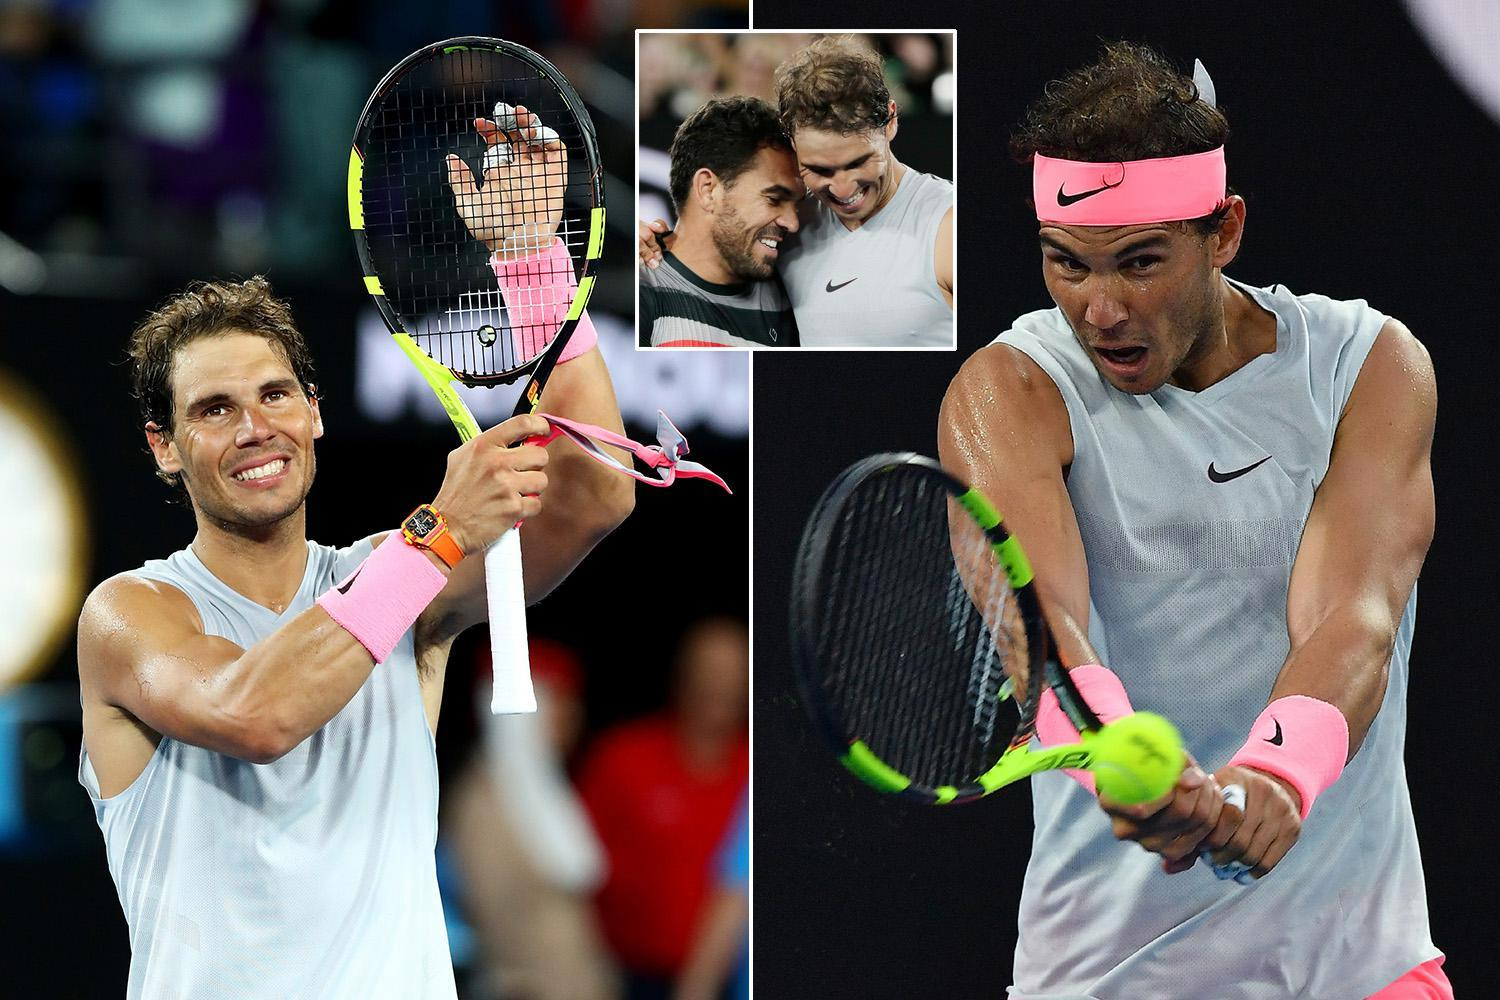 Australian Open 2018: Rafael Nadal shakes off injury fears with crushing first-round win over Victor Estrella Burgos